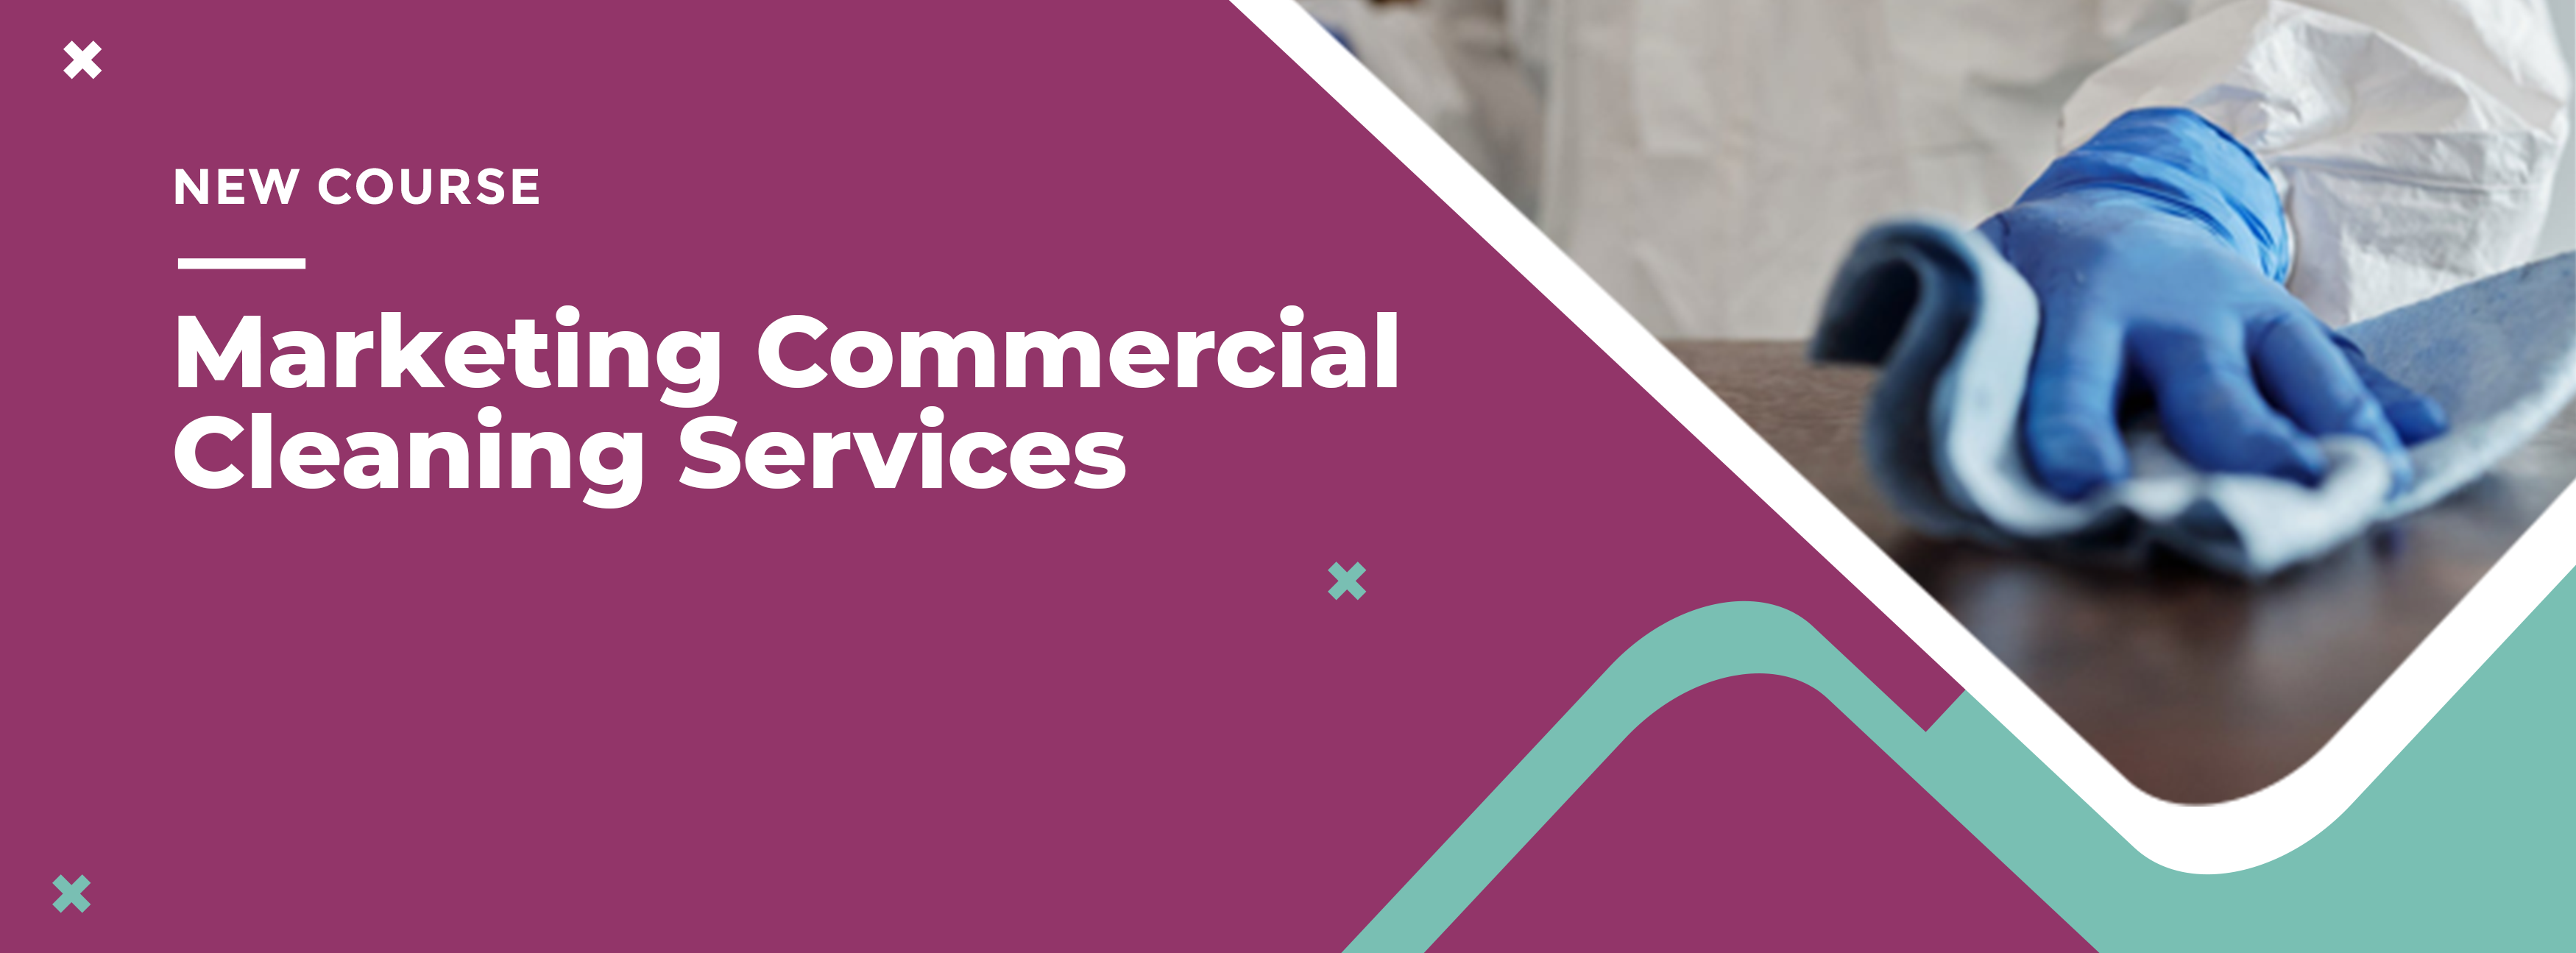 Marketing Commercial Cleaning Services